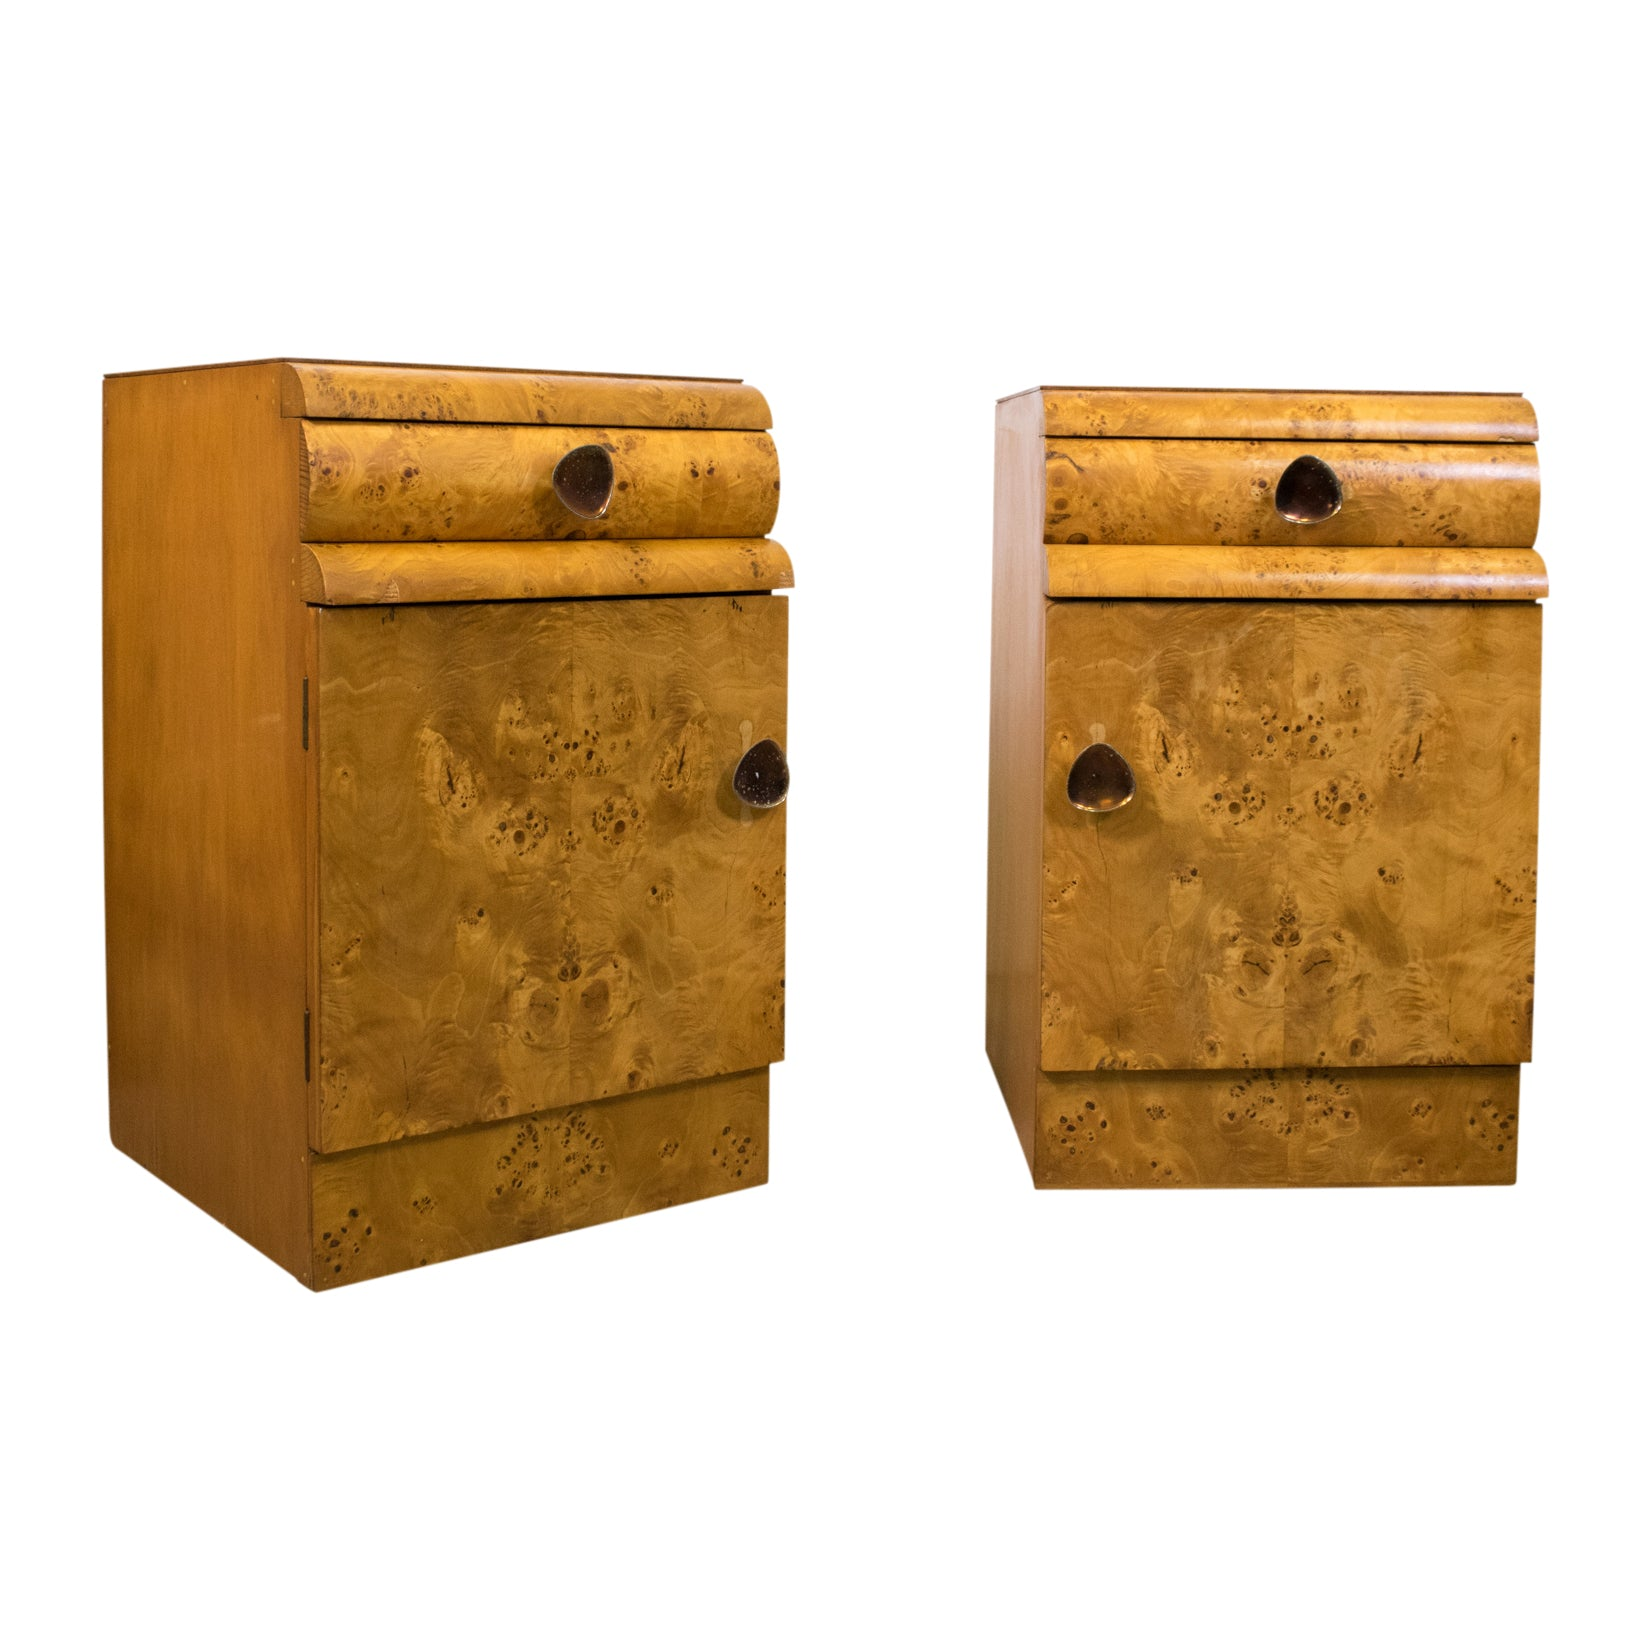 Pair of Art Deco Bedside Cabinets in Birdseye Maple